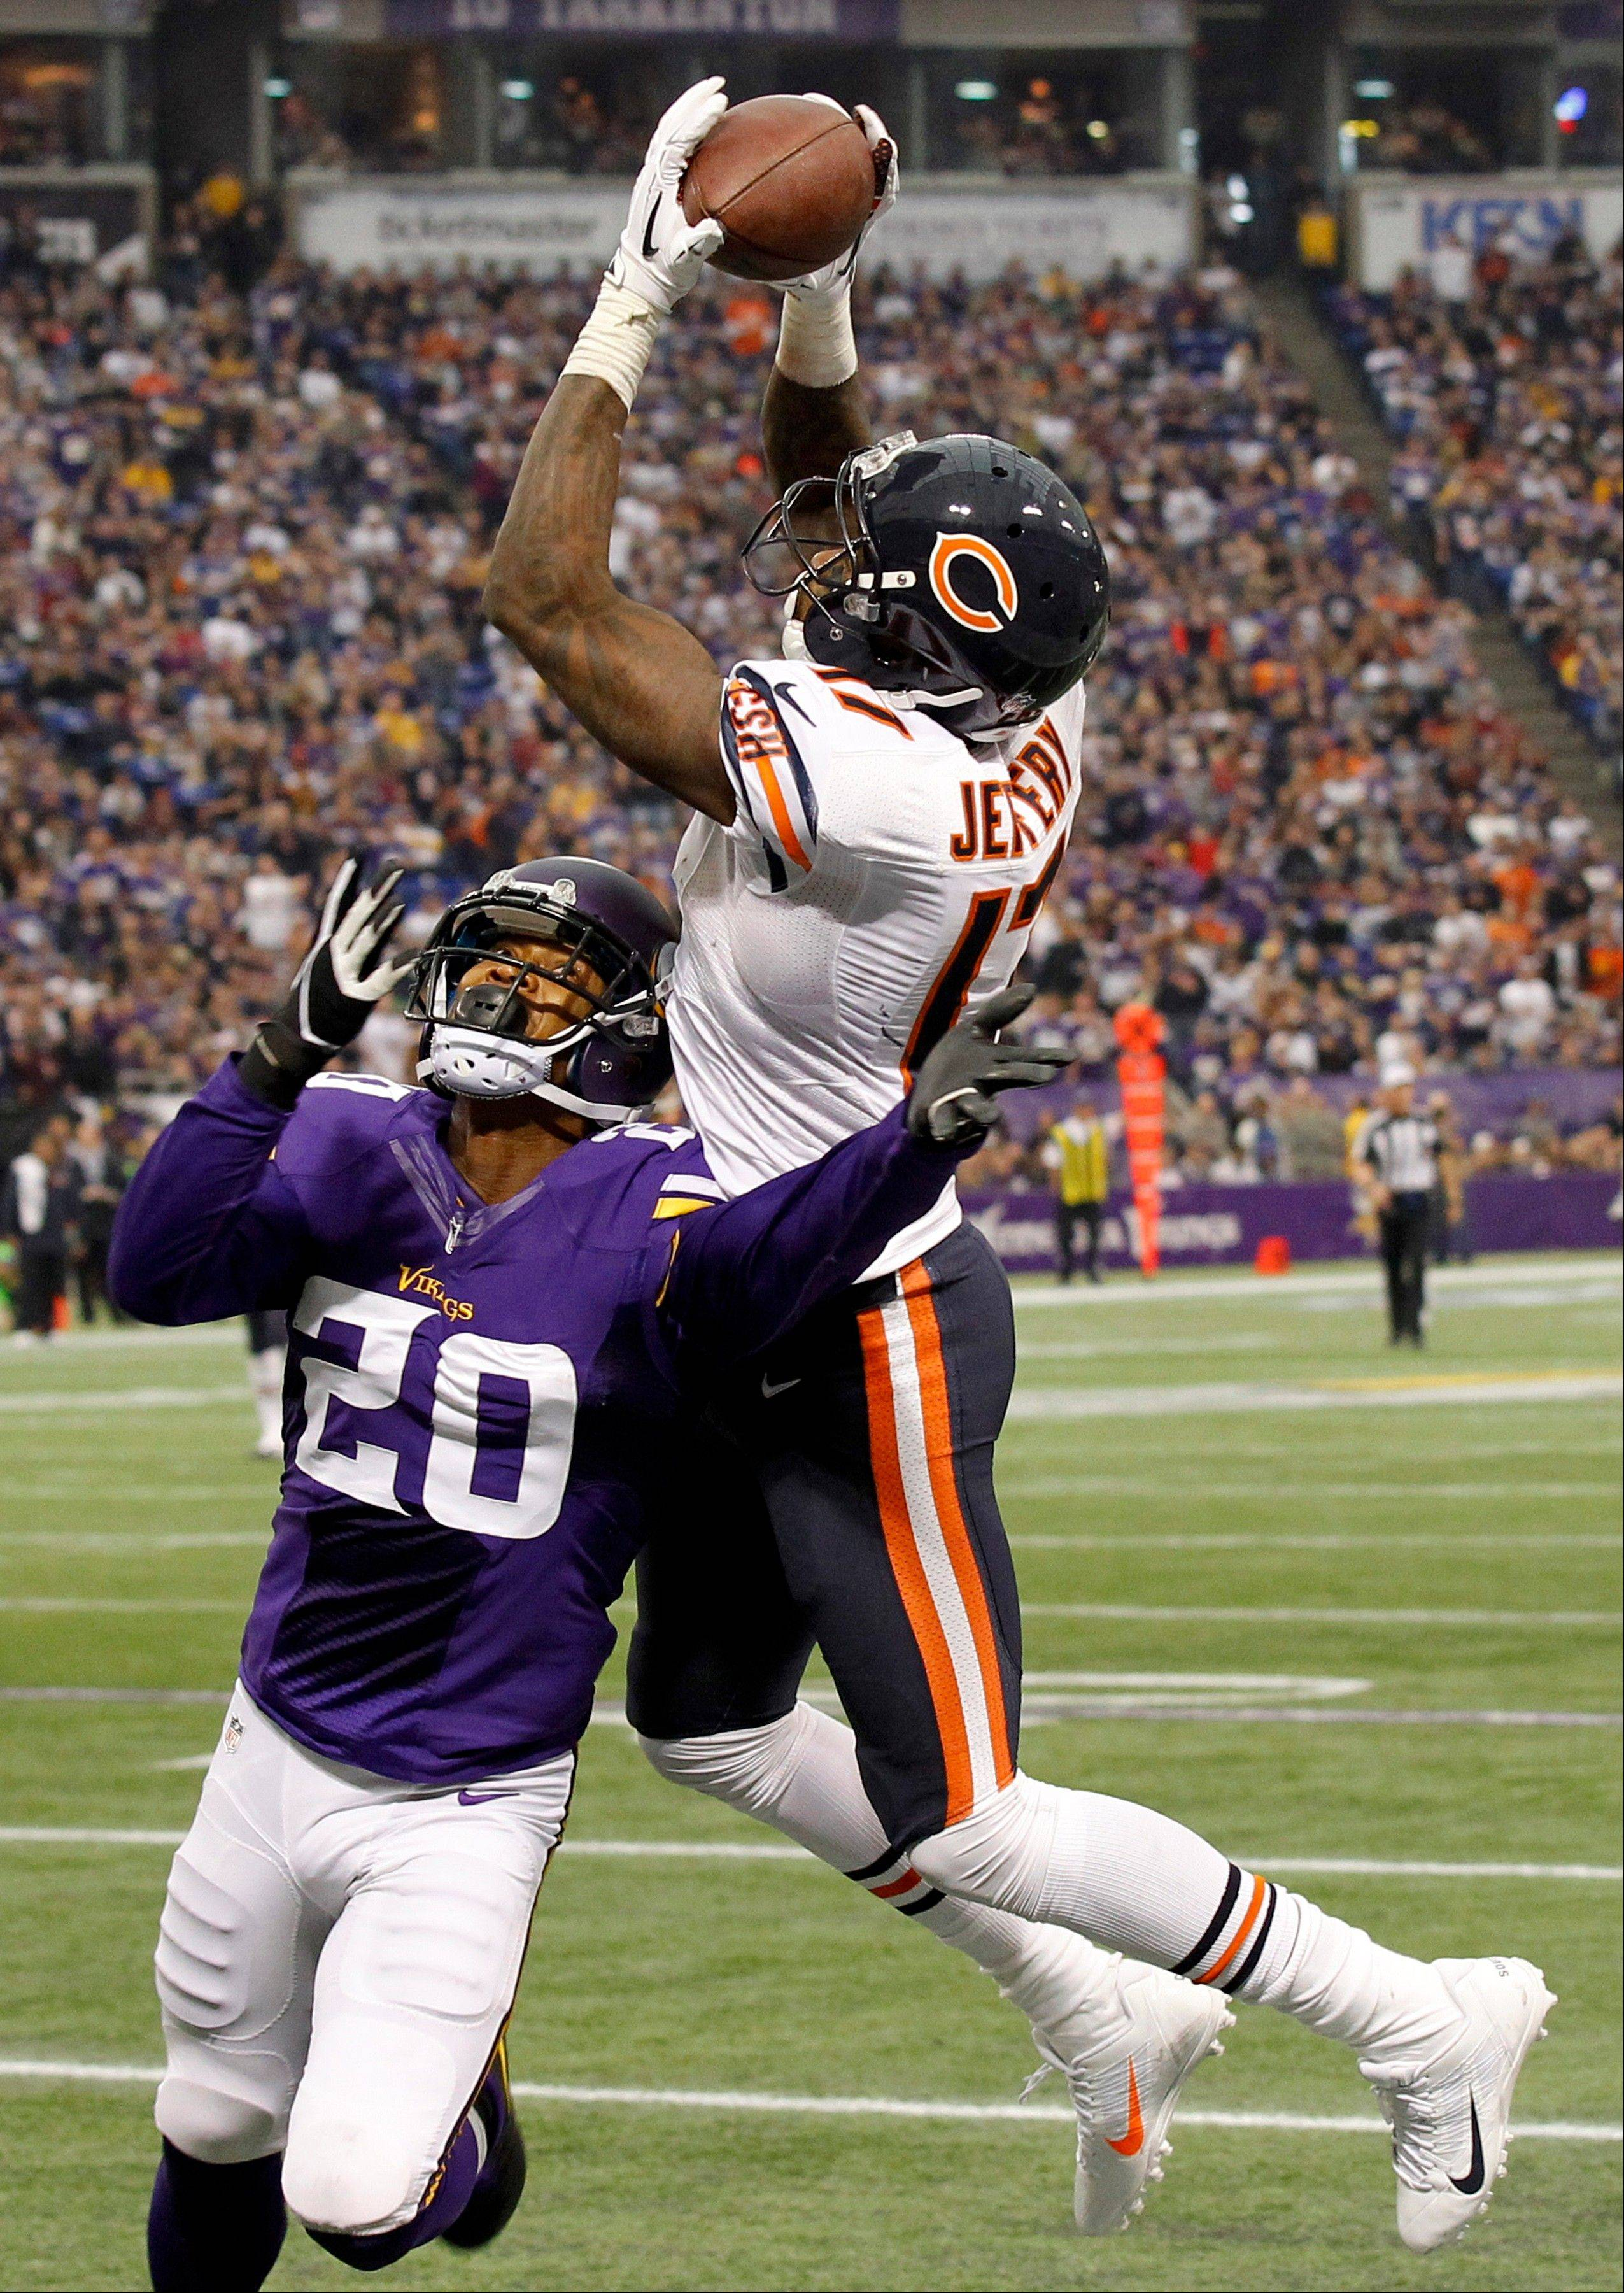 Chicago Bears wide receiver Alshon Jeffery catches a 46-yard touchdown pass over Minnesota Vikings cornerback Chris Cook (20) during the second half in Minneapolis.